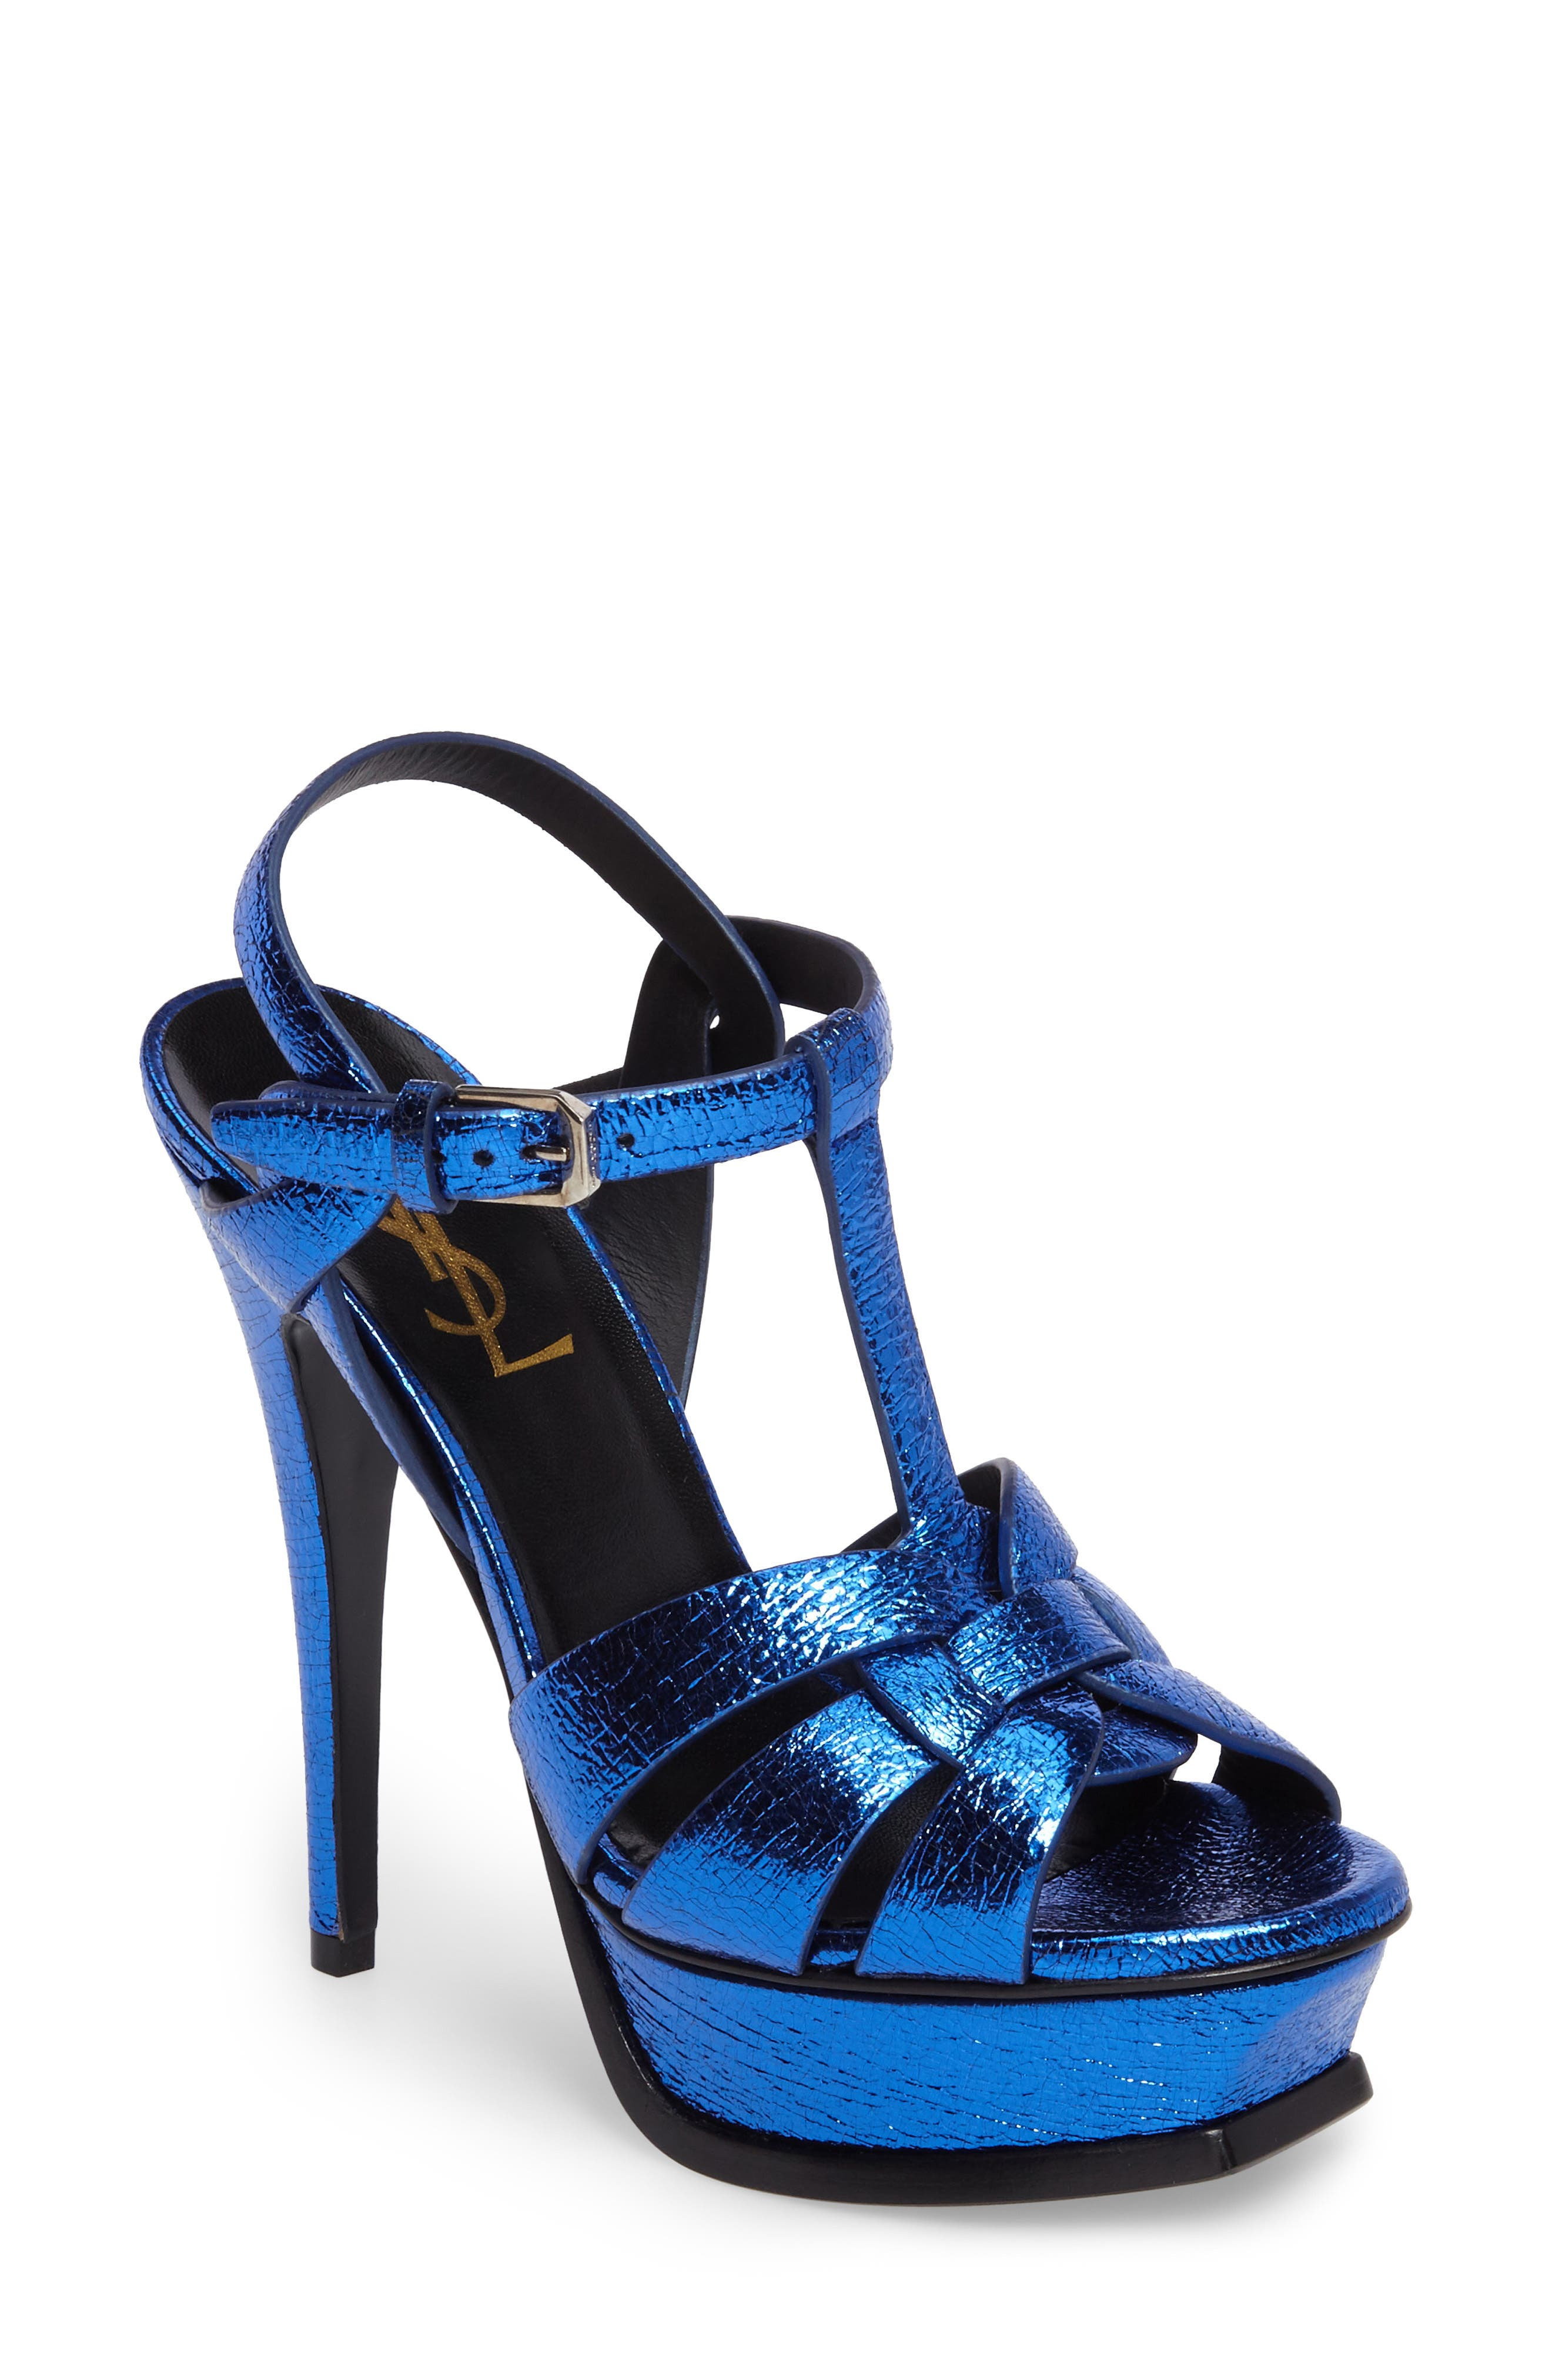 Saint Laurent Tribute Metallic Platform Sandal (Women)